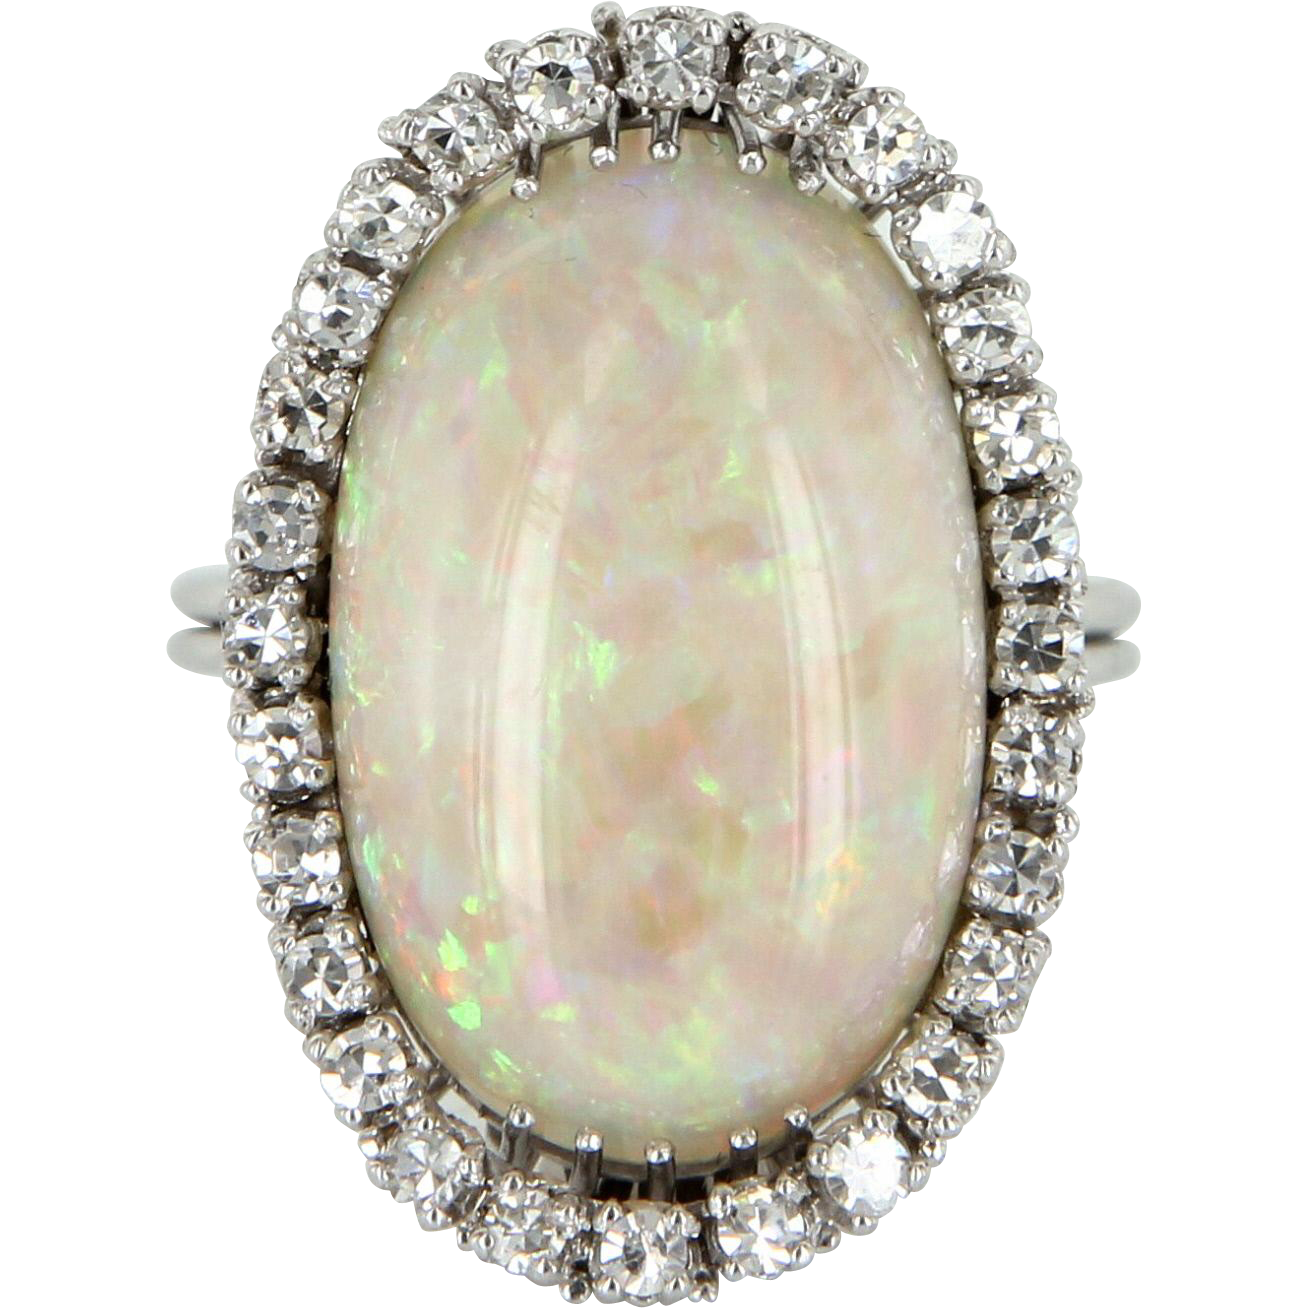 Natural Opal Diamond Cocktail Ring Vintage 18 Karat White Gold Estate Fine Jewelry